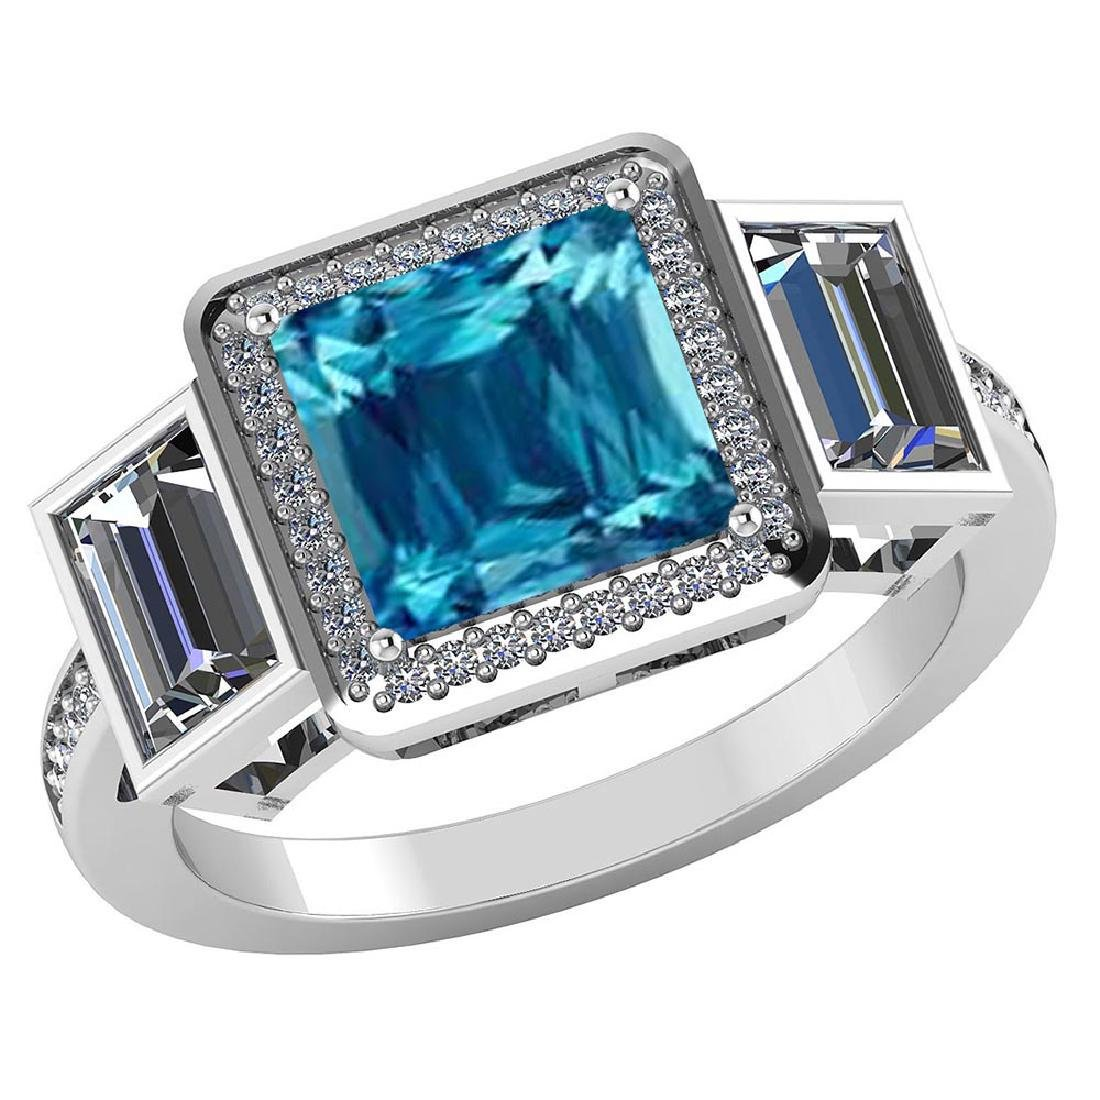 Certified 1.65 CTW Genuine Blue Topaz And Diamond 14K W